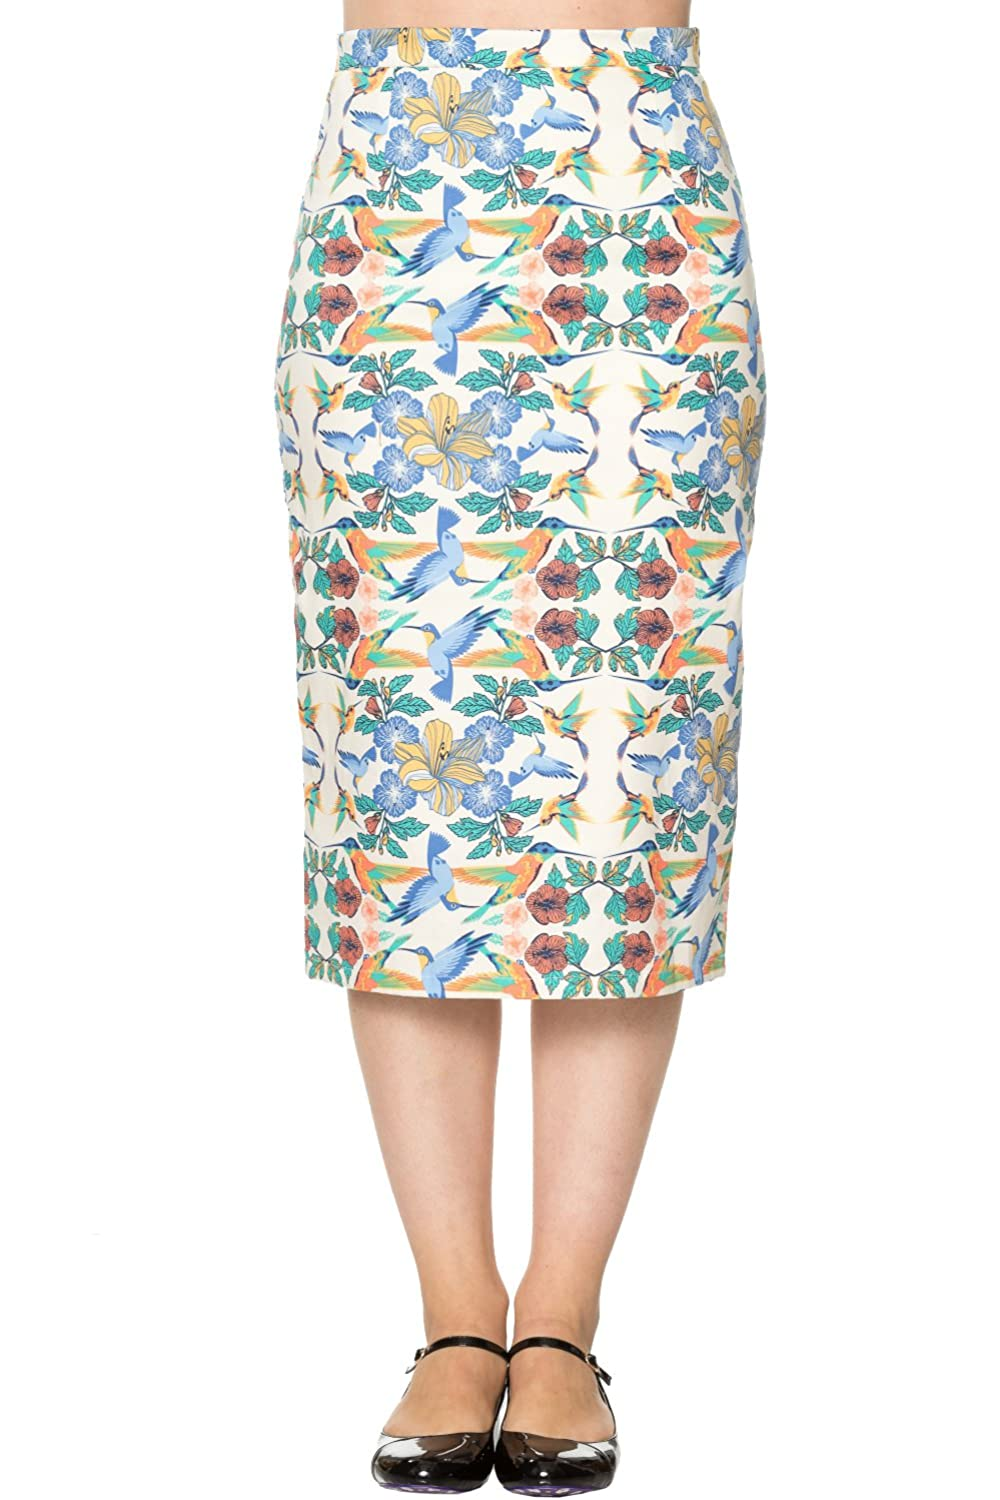 Banned Mandala Vintage Retro Pencil Skirt